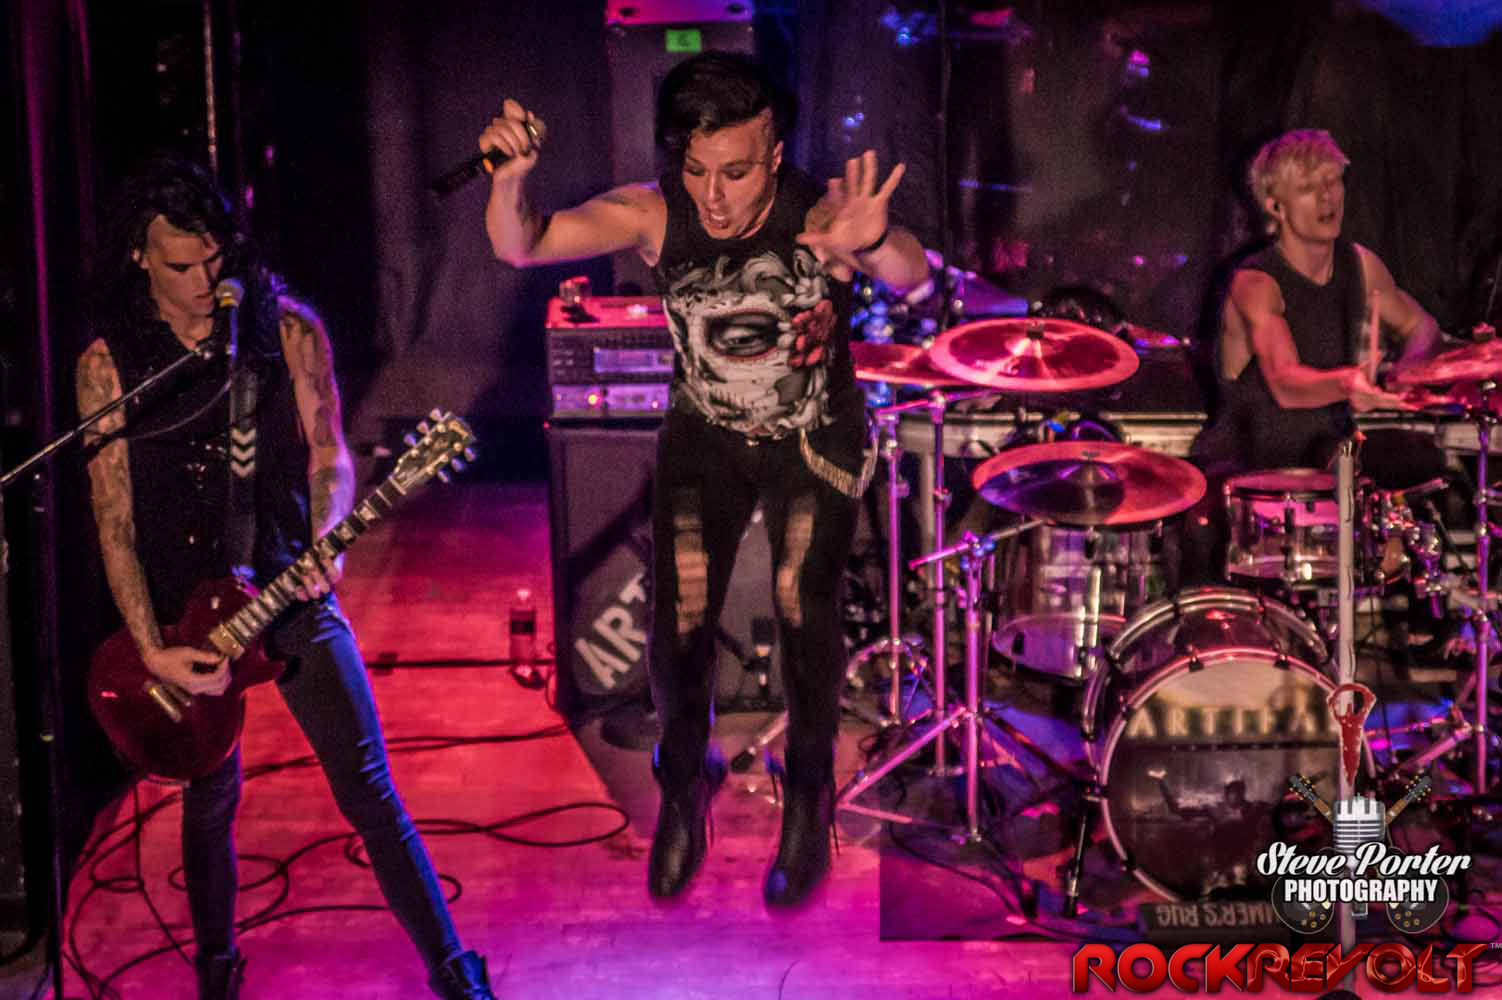 RockRevolt Magazine - Artifas - Scottie - band - jump